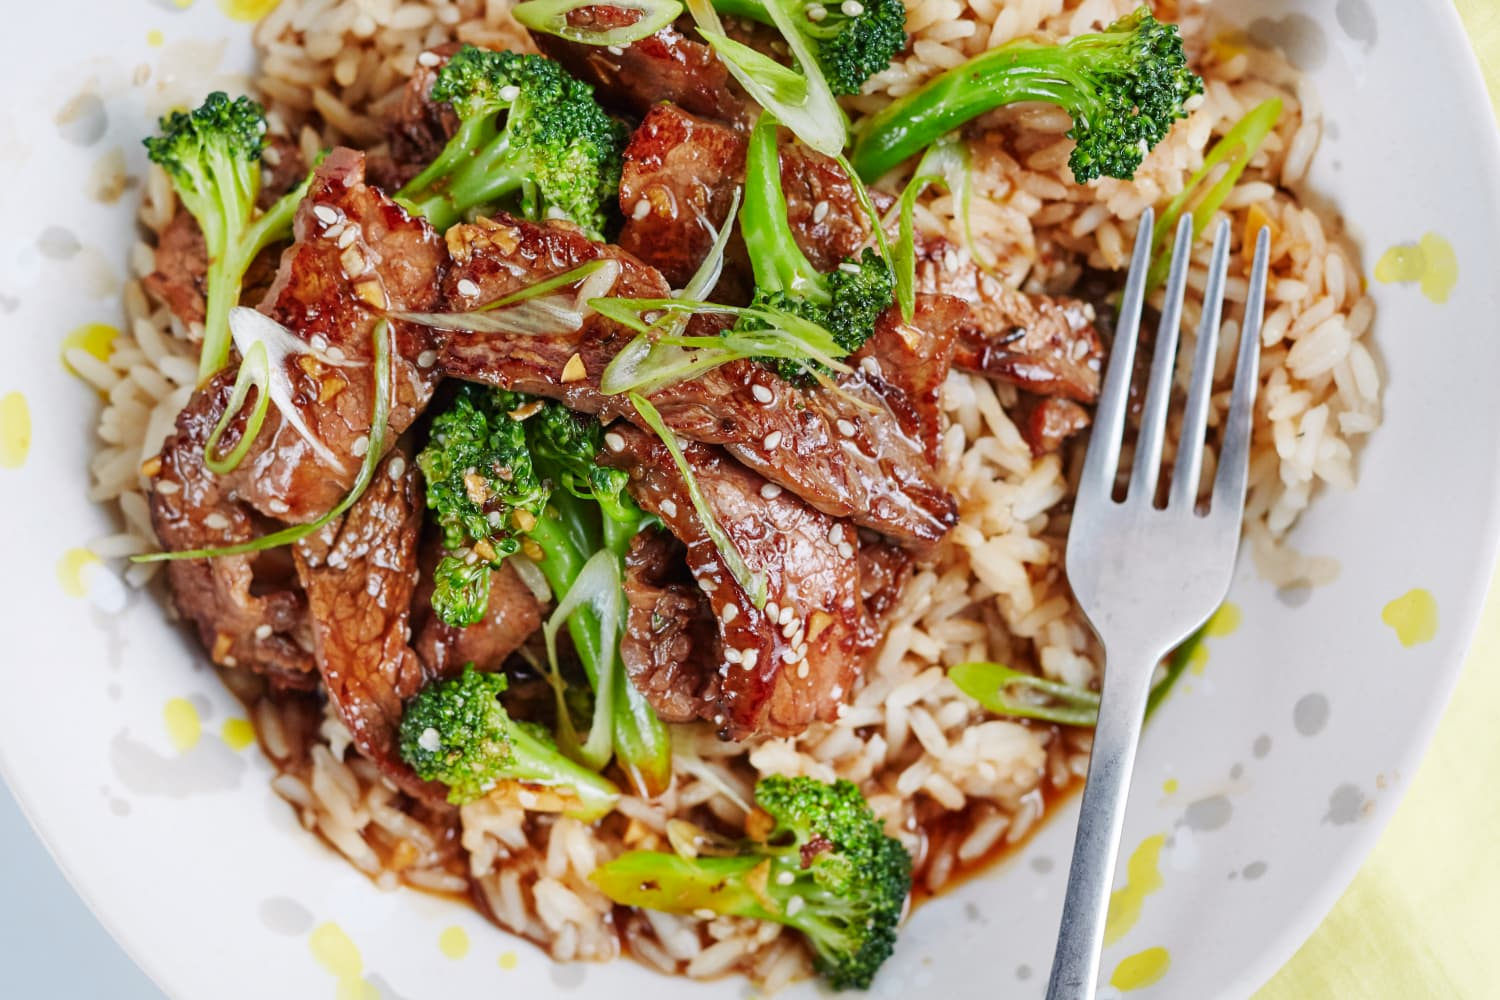 Recipe: Korean-Style Beef and Broccoli Bowl